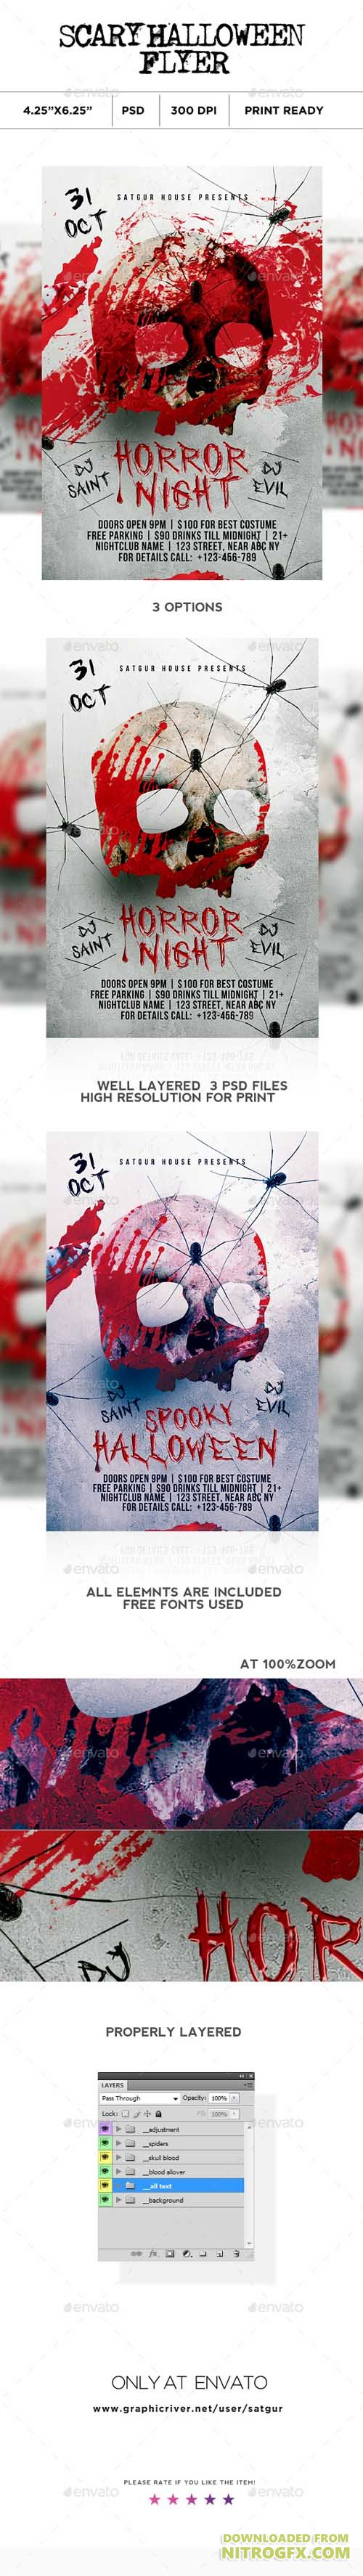 Scary Halloween Flyer V2 20693087